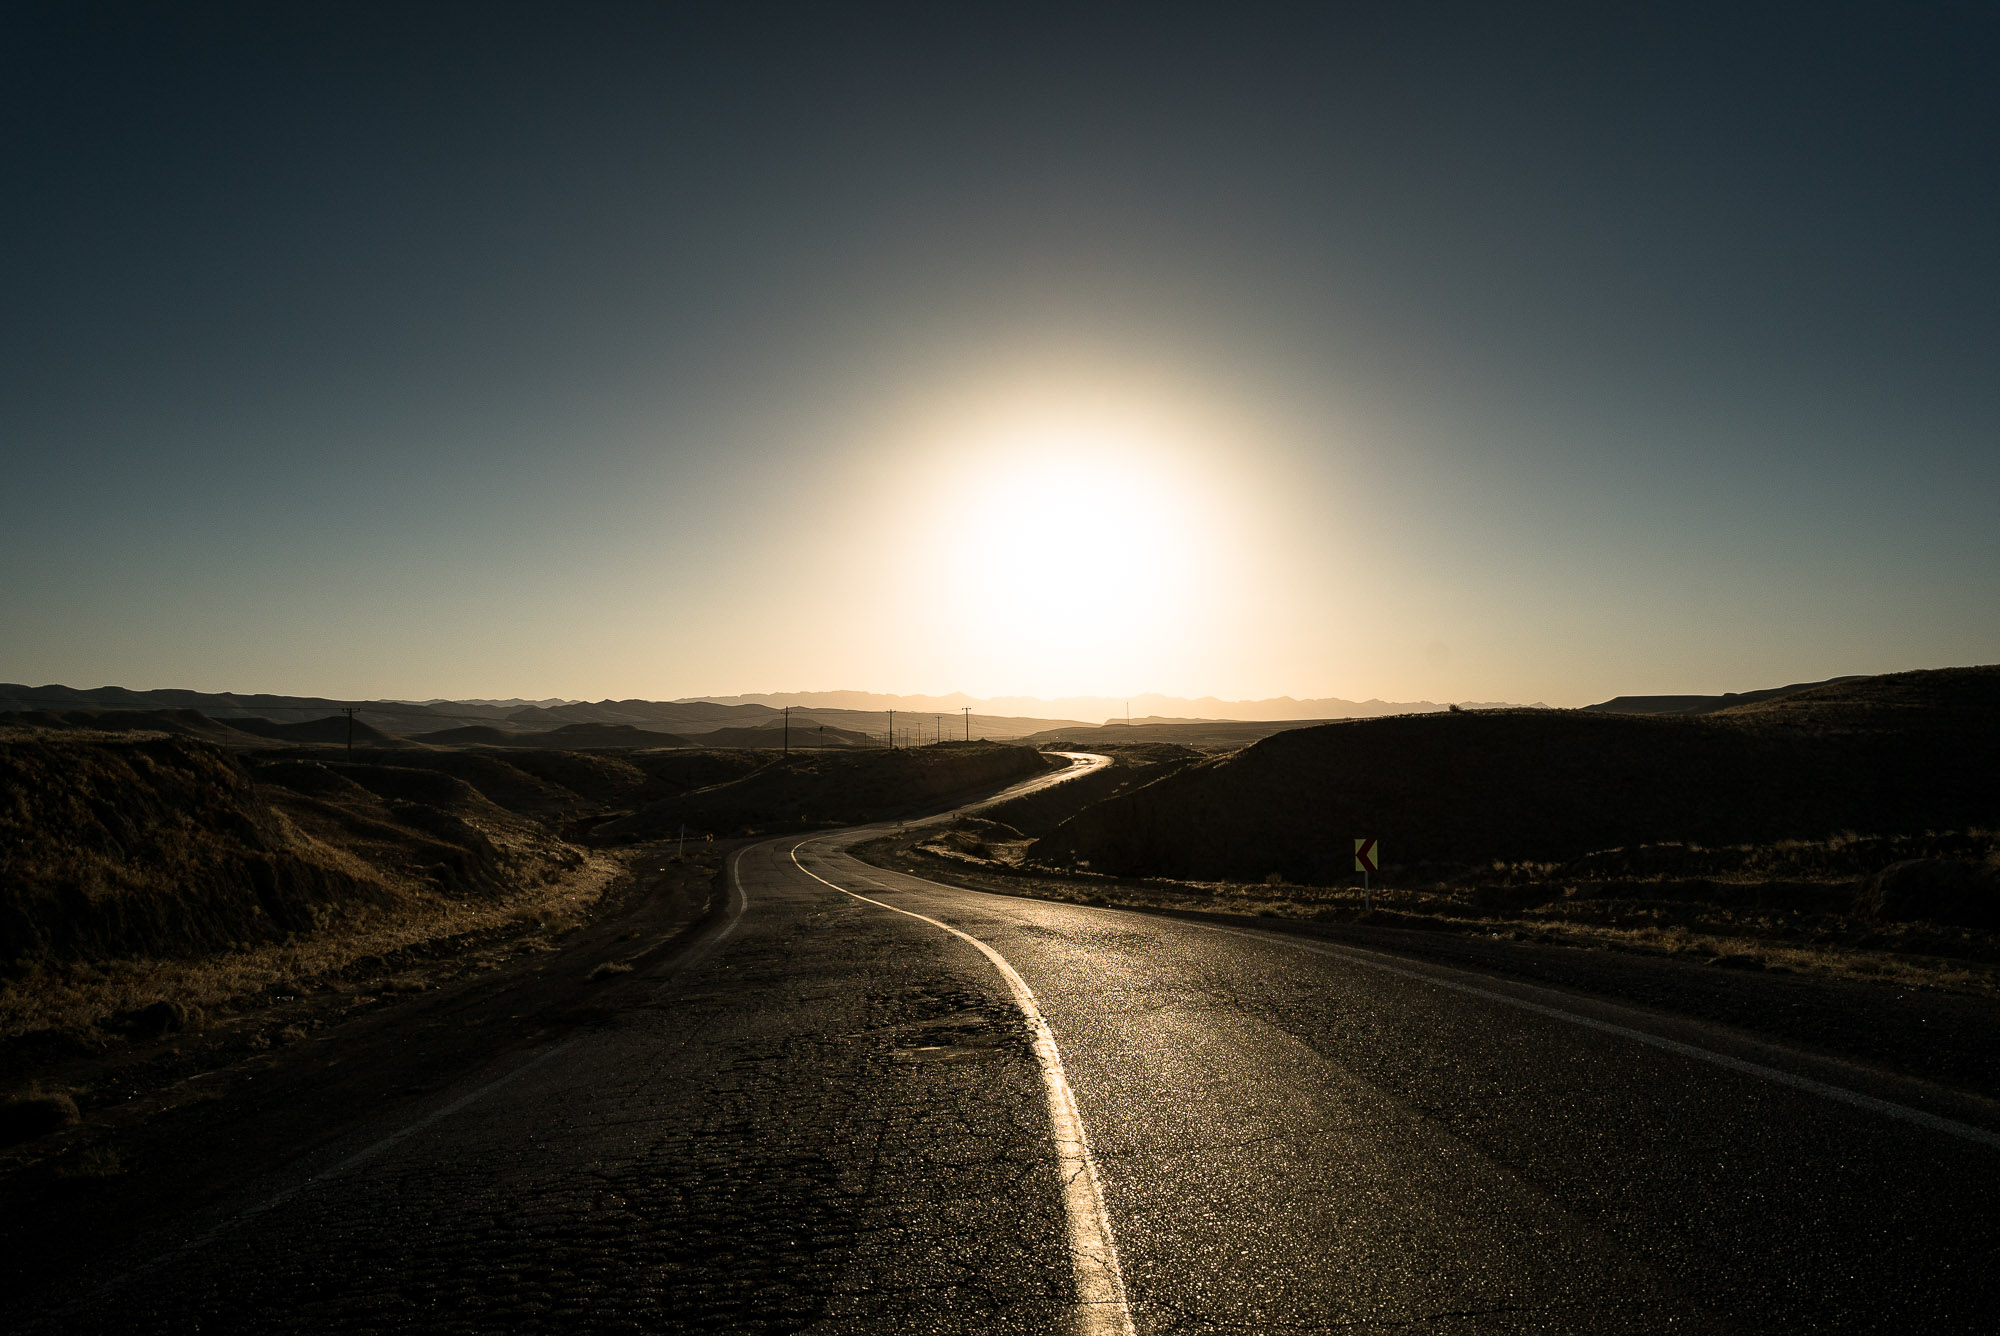 afternoon road in the hills